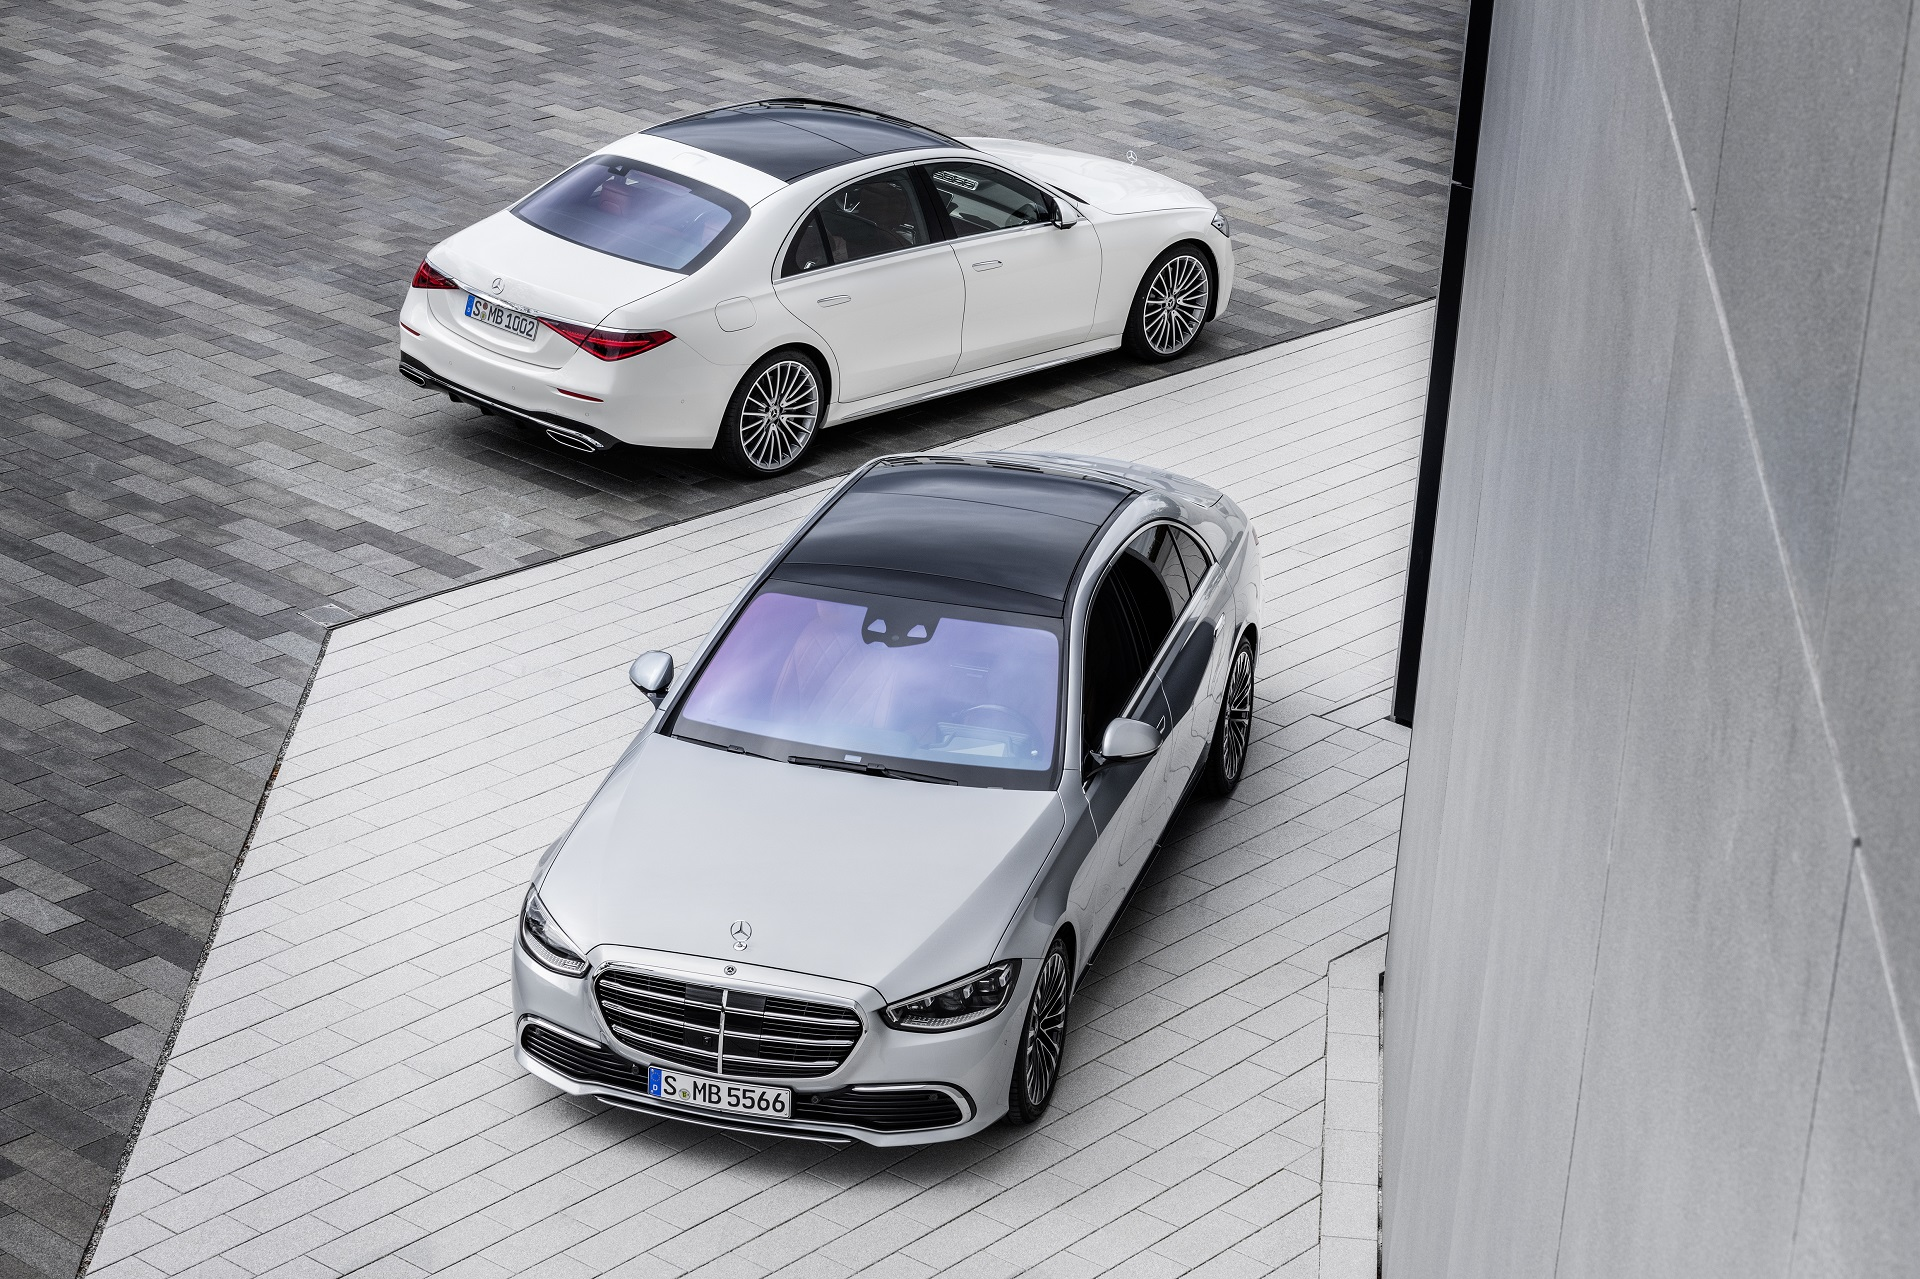 NEW MERCEDES-BENZ S-CLASS: Why it's the crystal ball of the car world